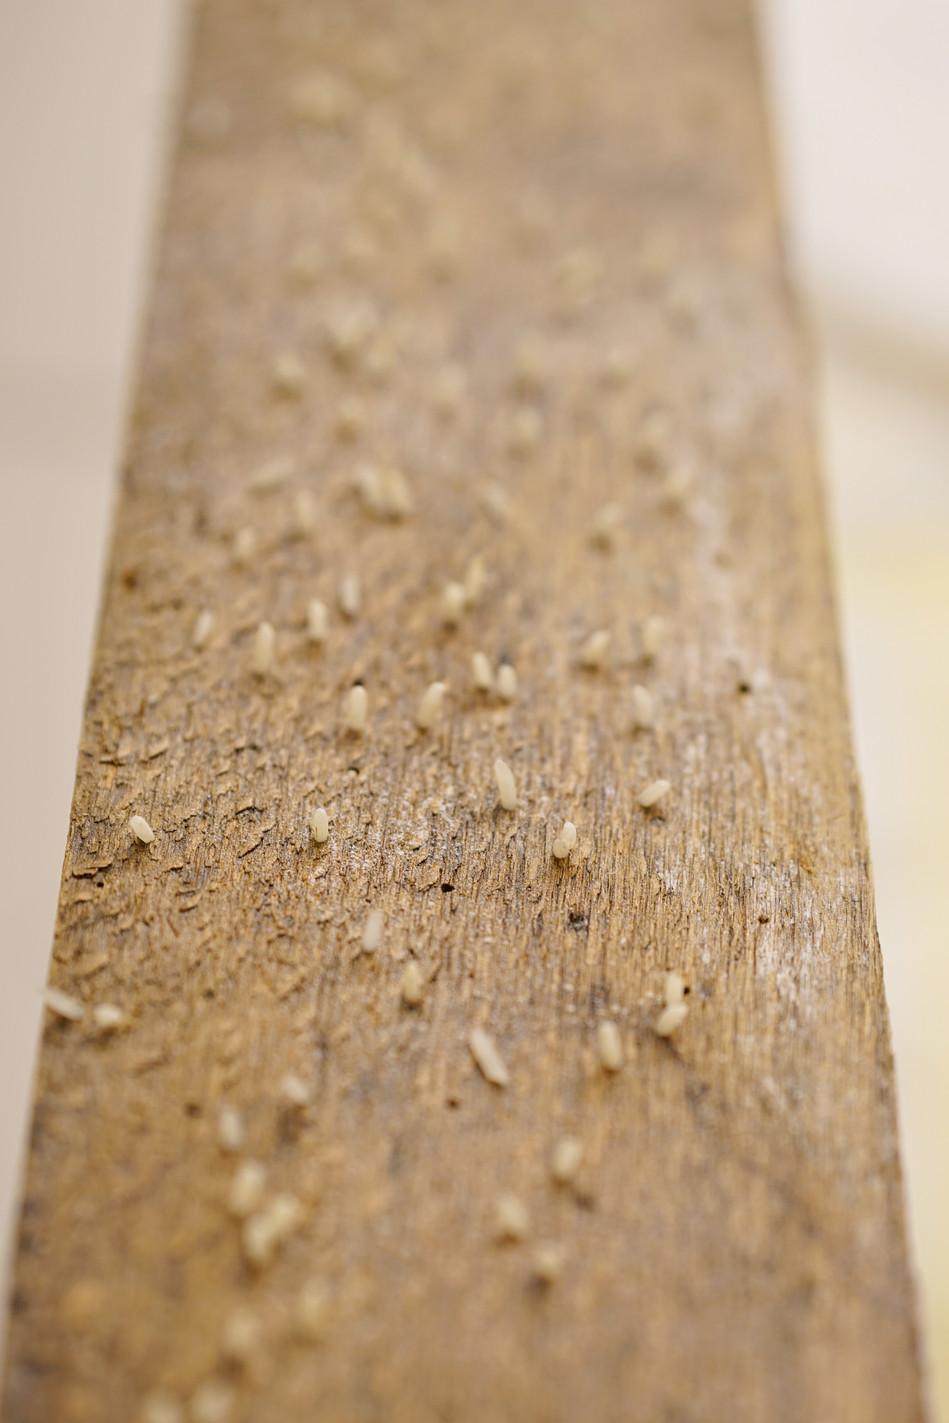 Reisbrett (rice board), 284 x 10 cm, wood, rice, 2014 (detail)